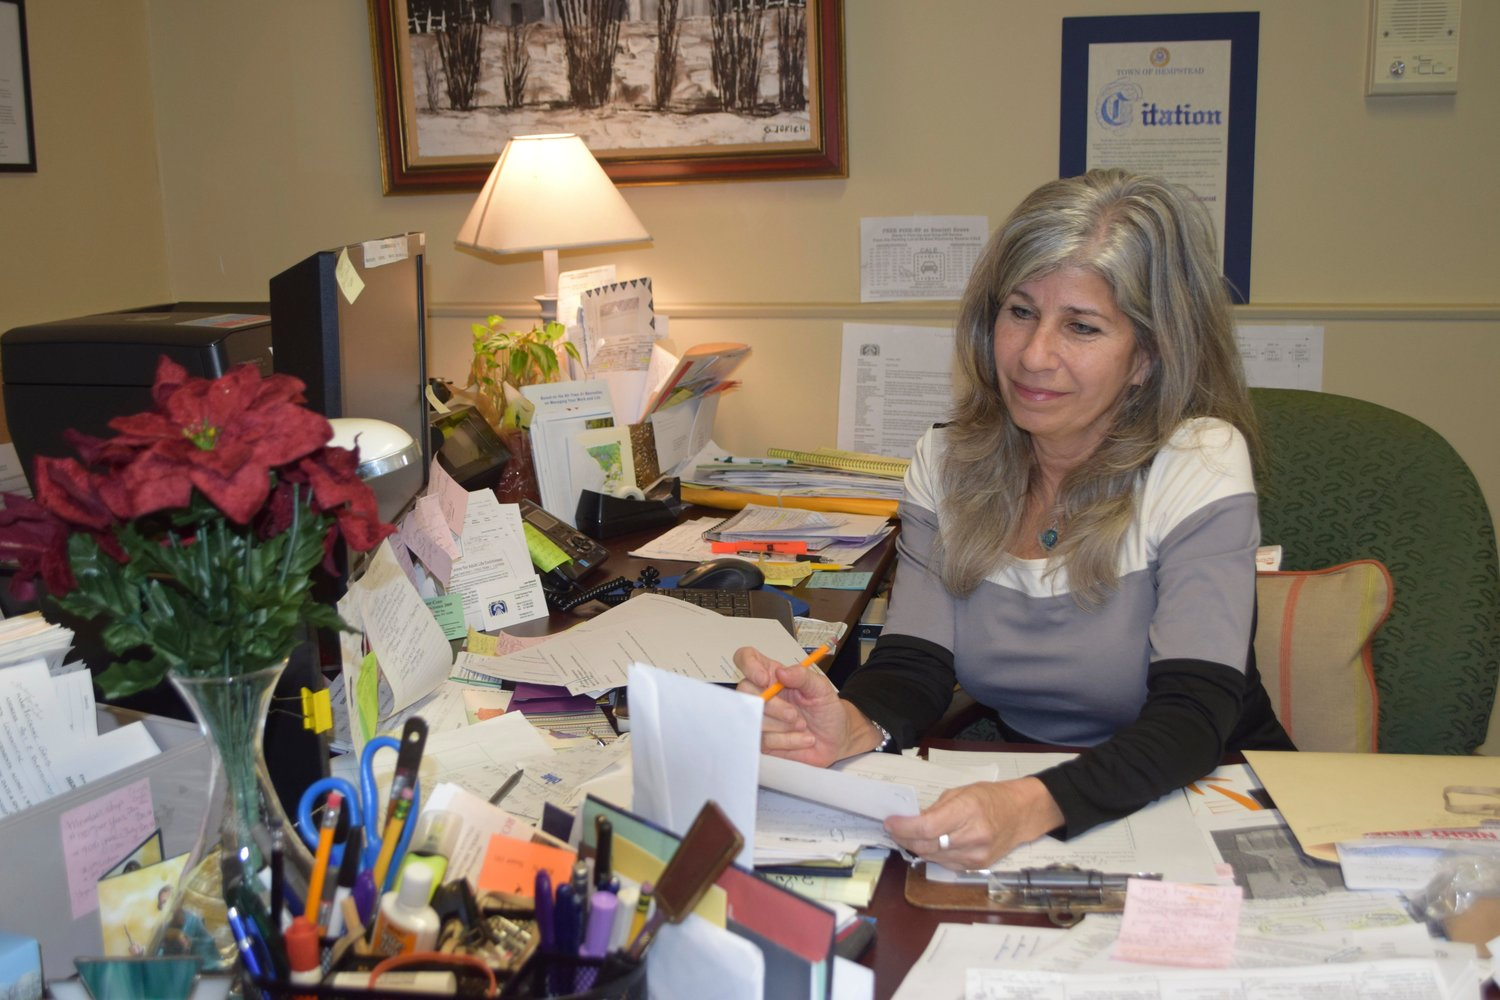 Lee Gerardi considers one of the many decisions she needs to make as CALE executive director.